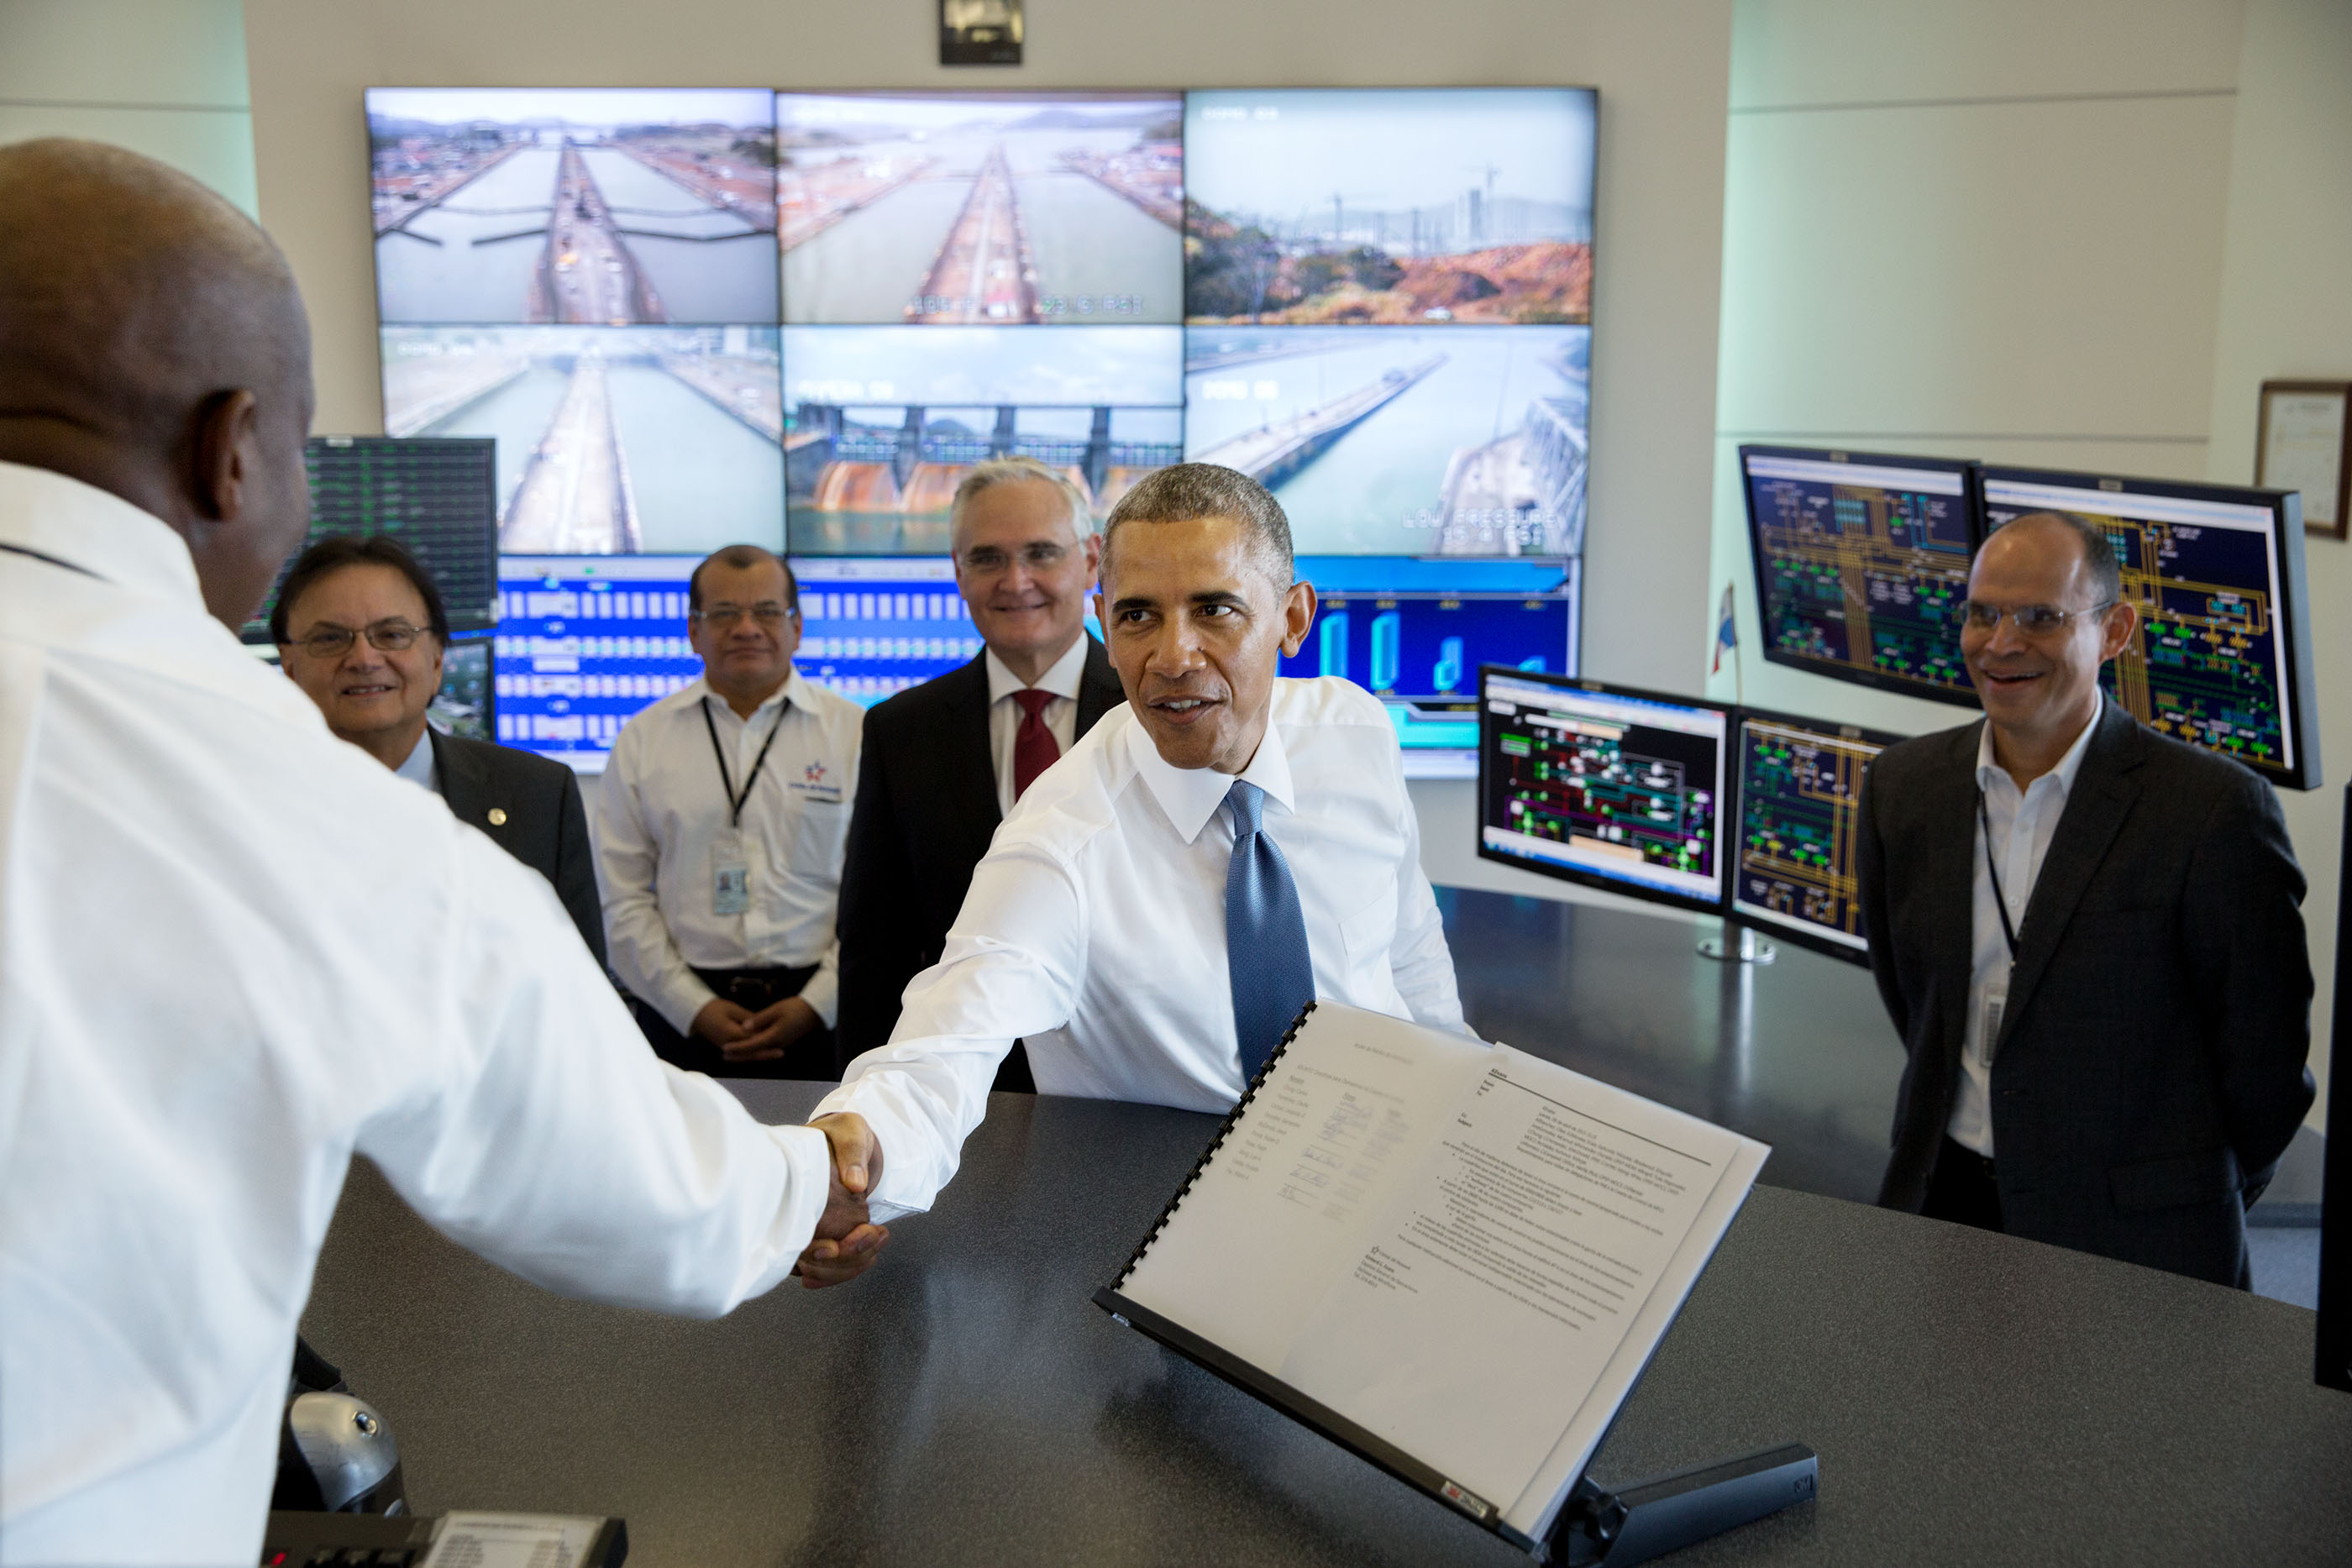 President Obama greets workers in the control tower at the Miraflores Locks in Ancon. (Official White House Photo by Pete Souza)